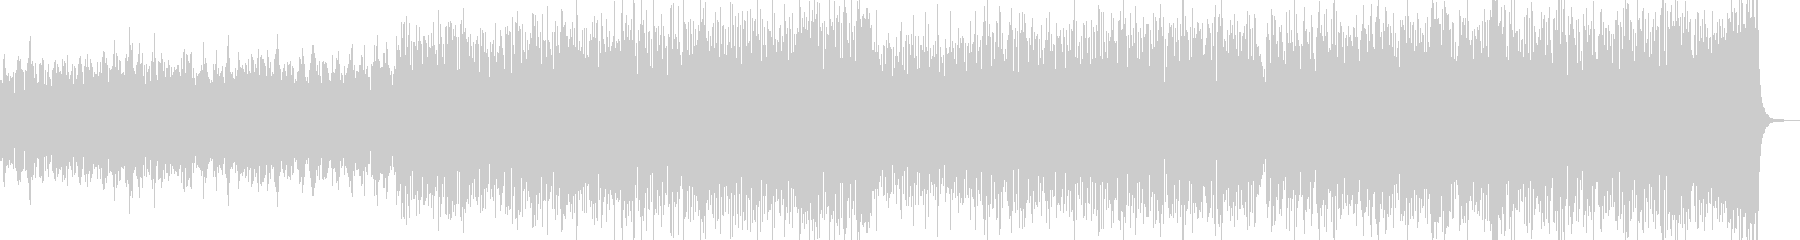 Music box and string / sweet odd time signature dance A's unreproduced waveform